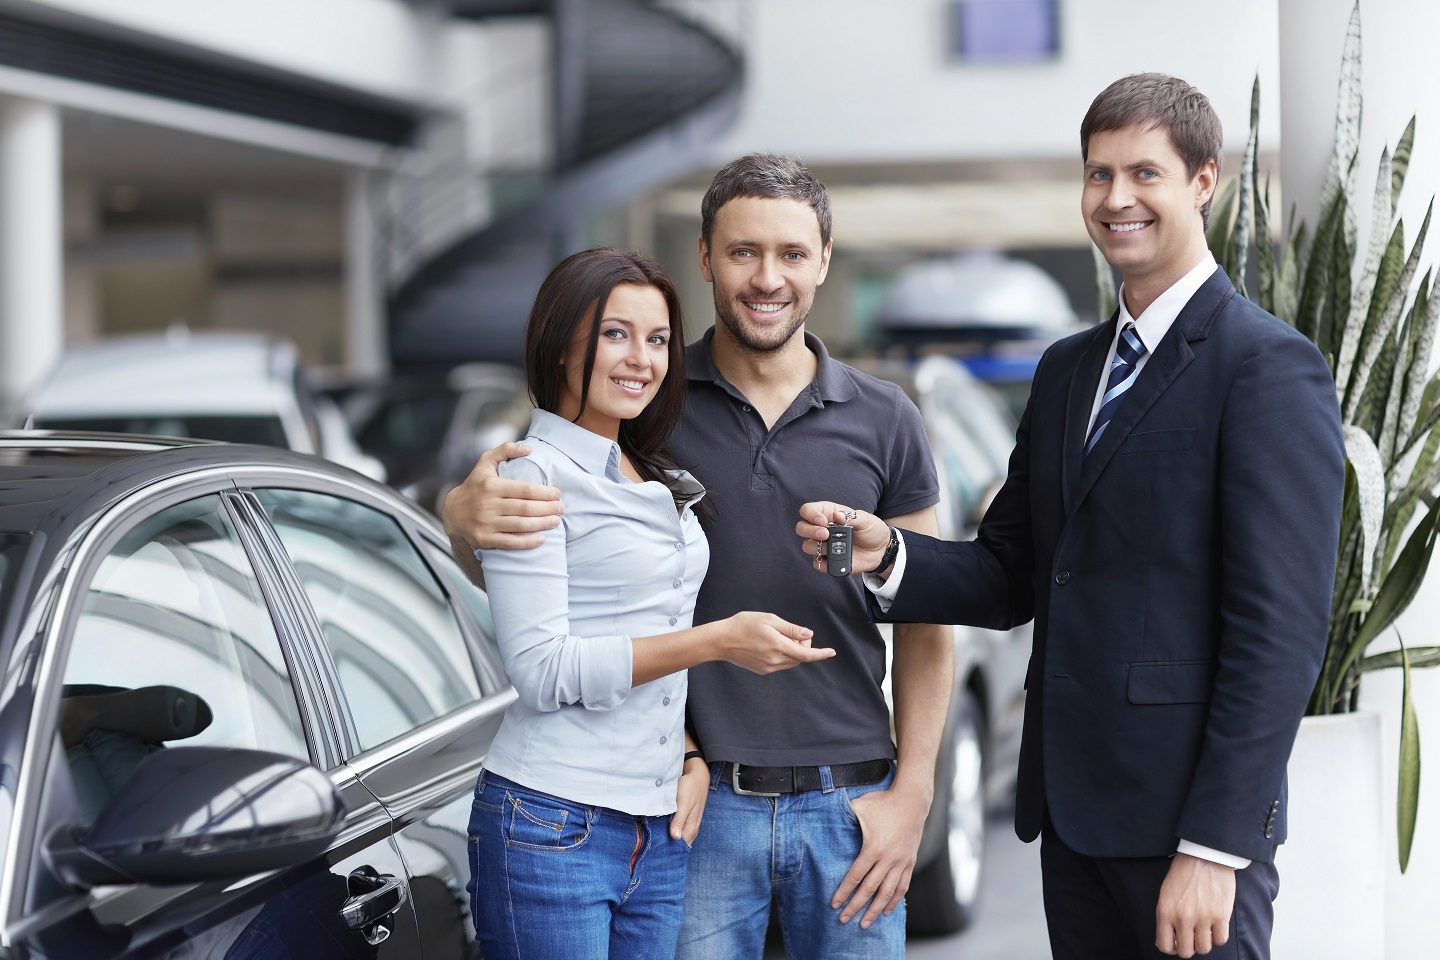 We Will Help With Your Automotive Needs!